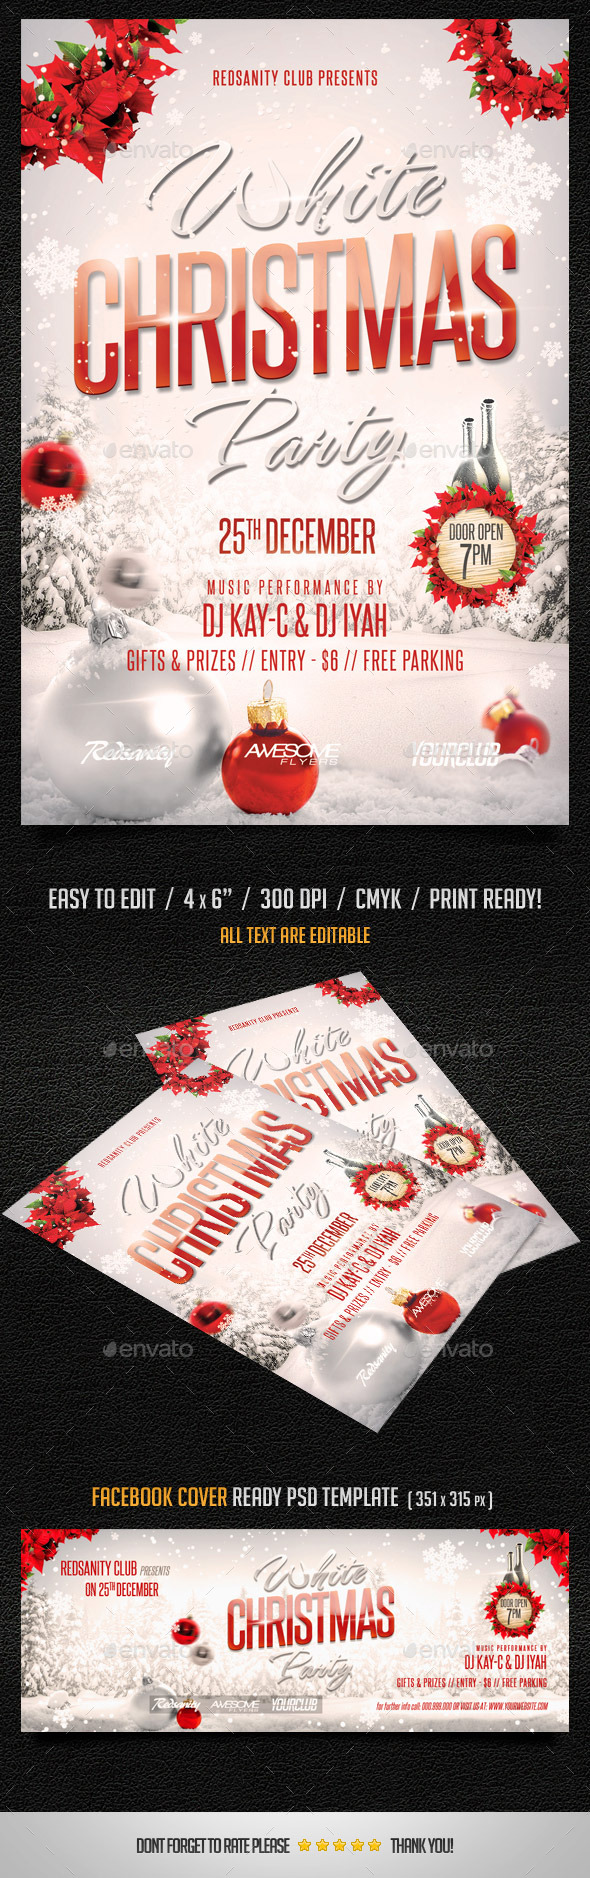 GraphicRiver White Christmas Party Flyer plus FB Cover 9597182